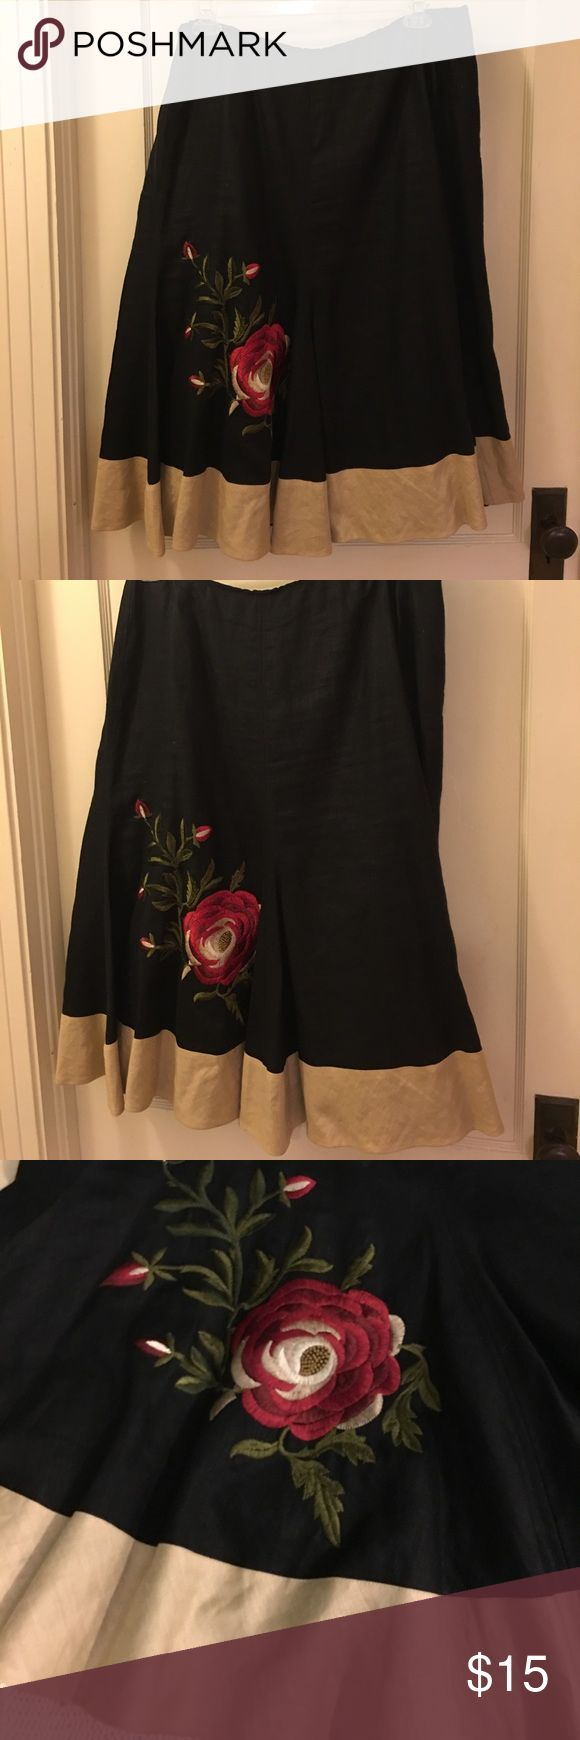 Cotton/linen lined skirt Cotton linen lined skirt with border and lovely embroidered flower on the skirt. Casual wear for work, party or church. Can be dressed up or down. Nine West Skirts